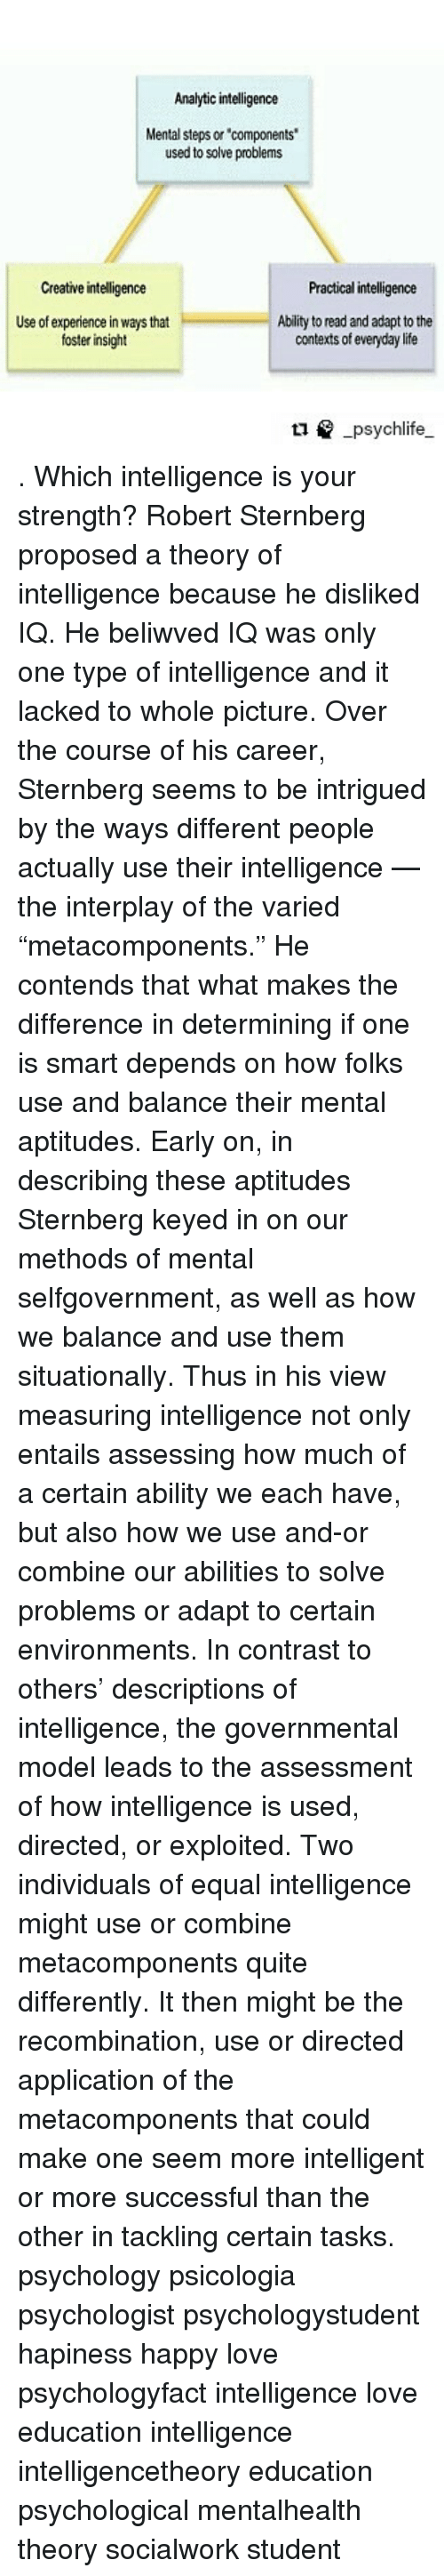 intellligence in everyday life and problems with measuring iq